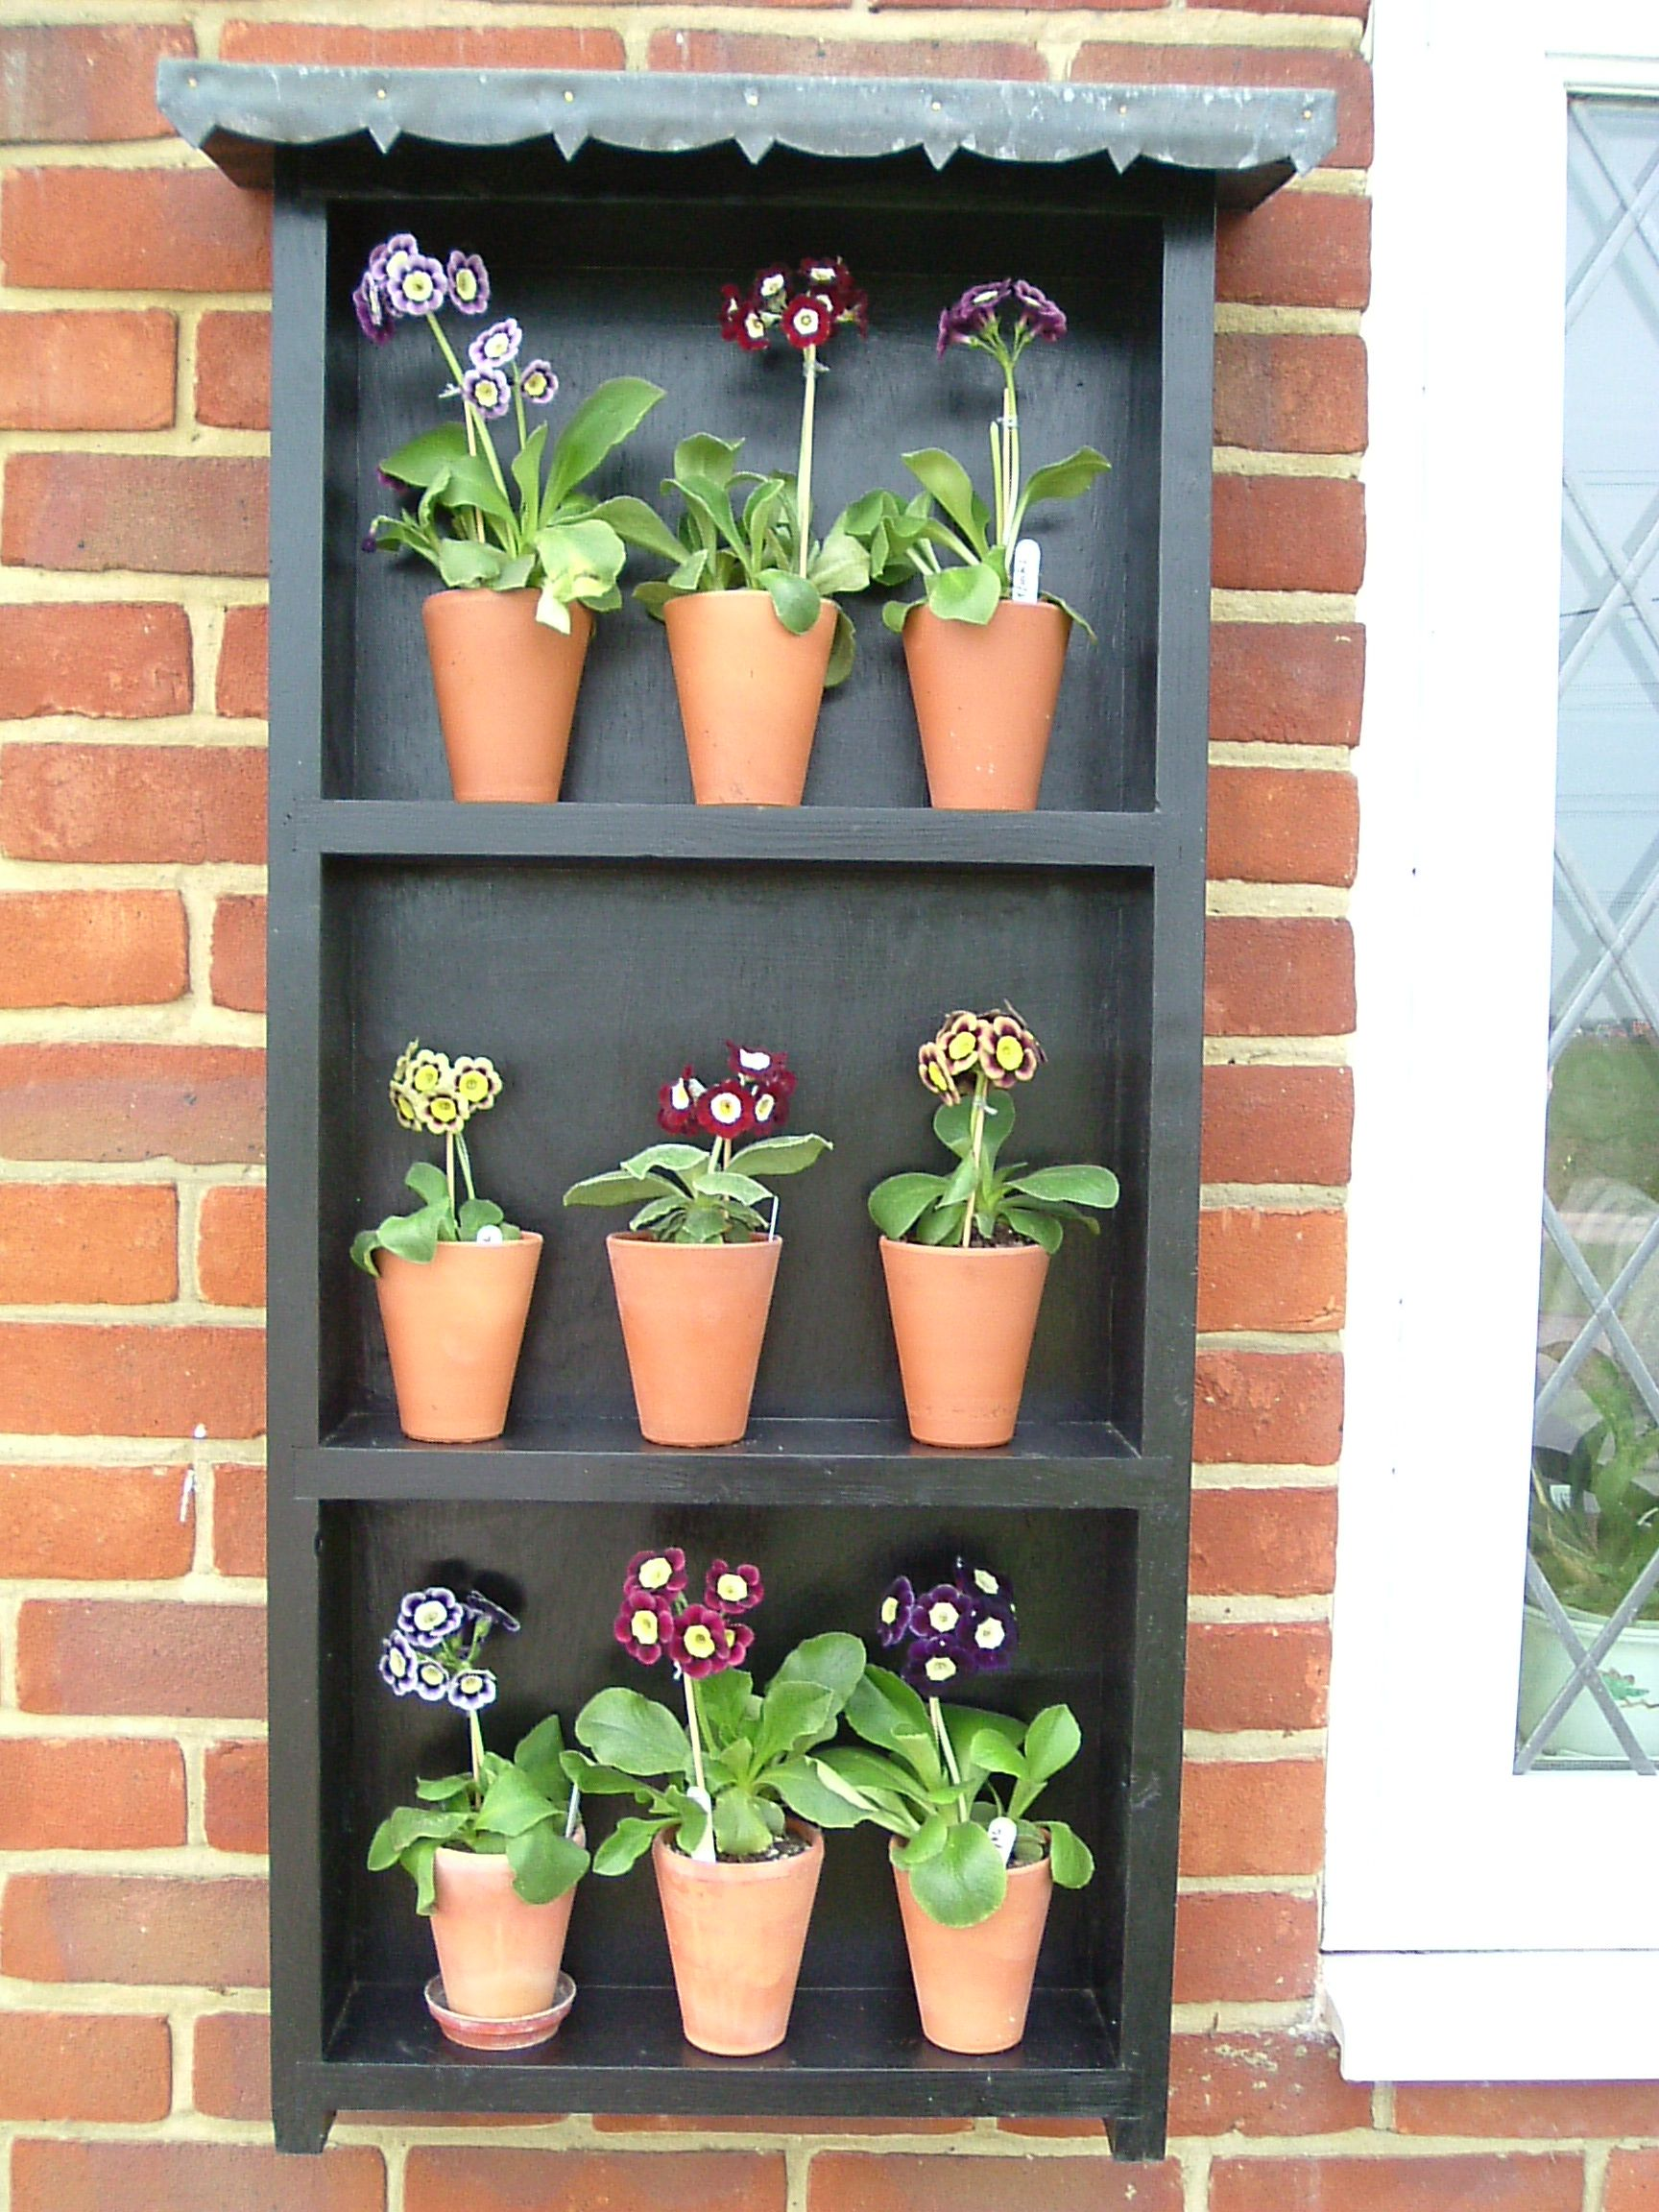 Auricula Theatre Auriculas Prefer The Cool Of Outside But Not Wet Show Varieties In Particular Which Have Floury Covering To Their Flowers